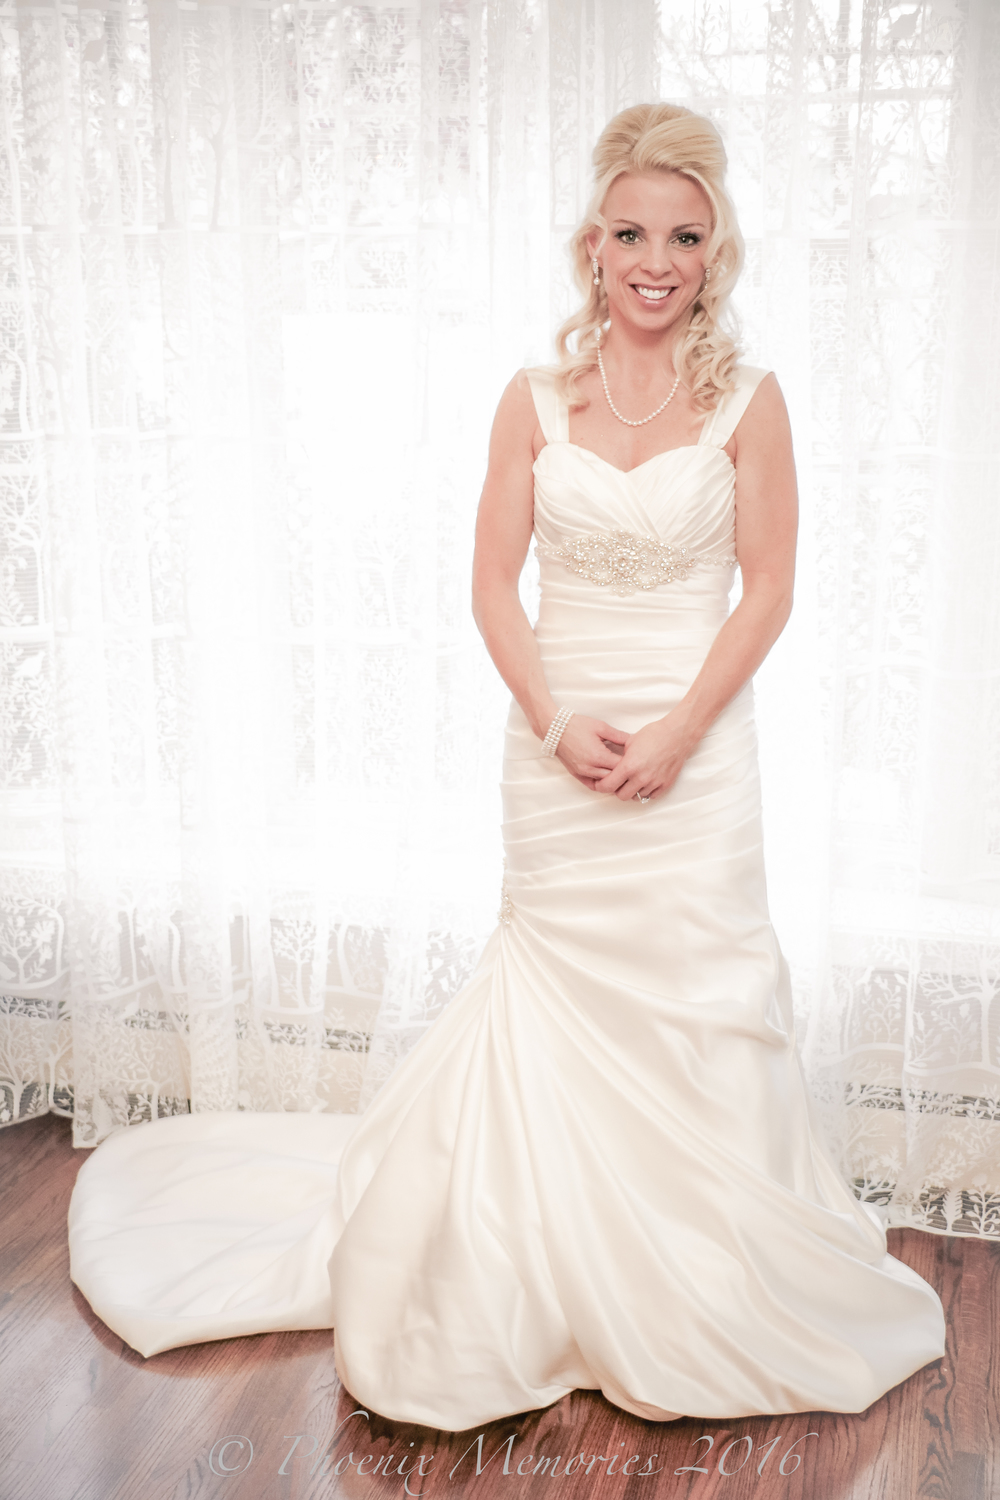 Sarah is ready to walk down the aisle with her completed bridal look from head to toe, with pearl necklace and earrings, jewel patterned bodice, pearl bracelet, and her gorgeous ring from  Shane Co. Jewelers.